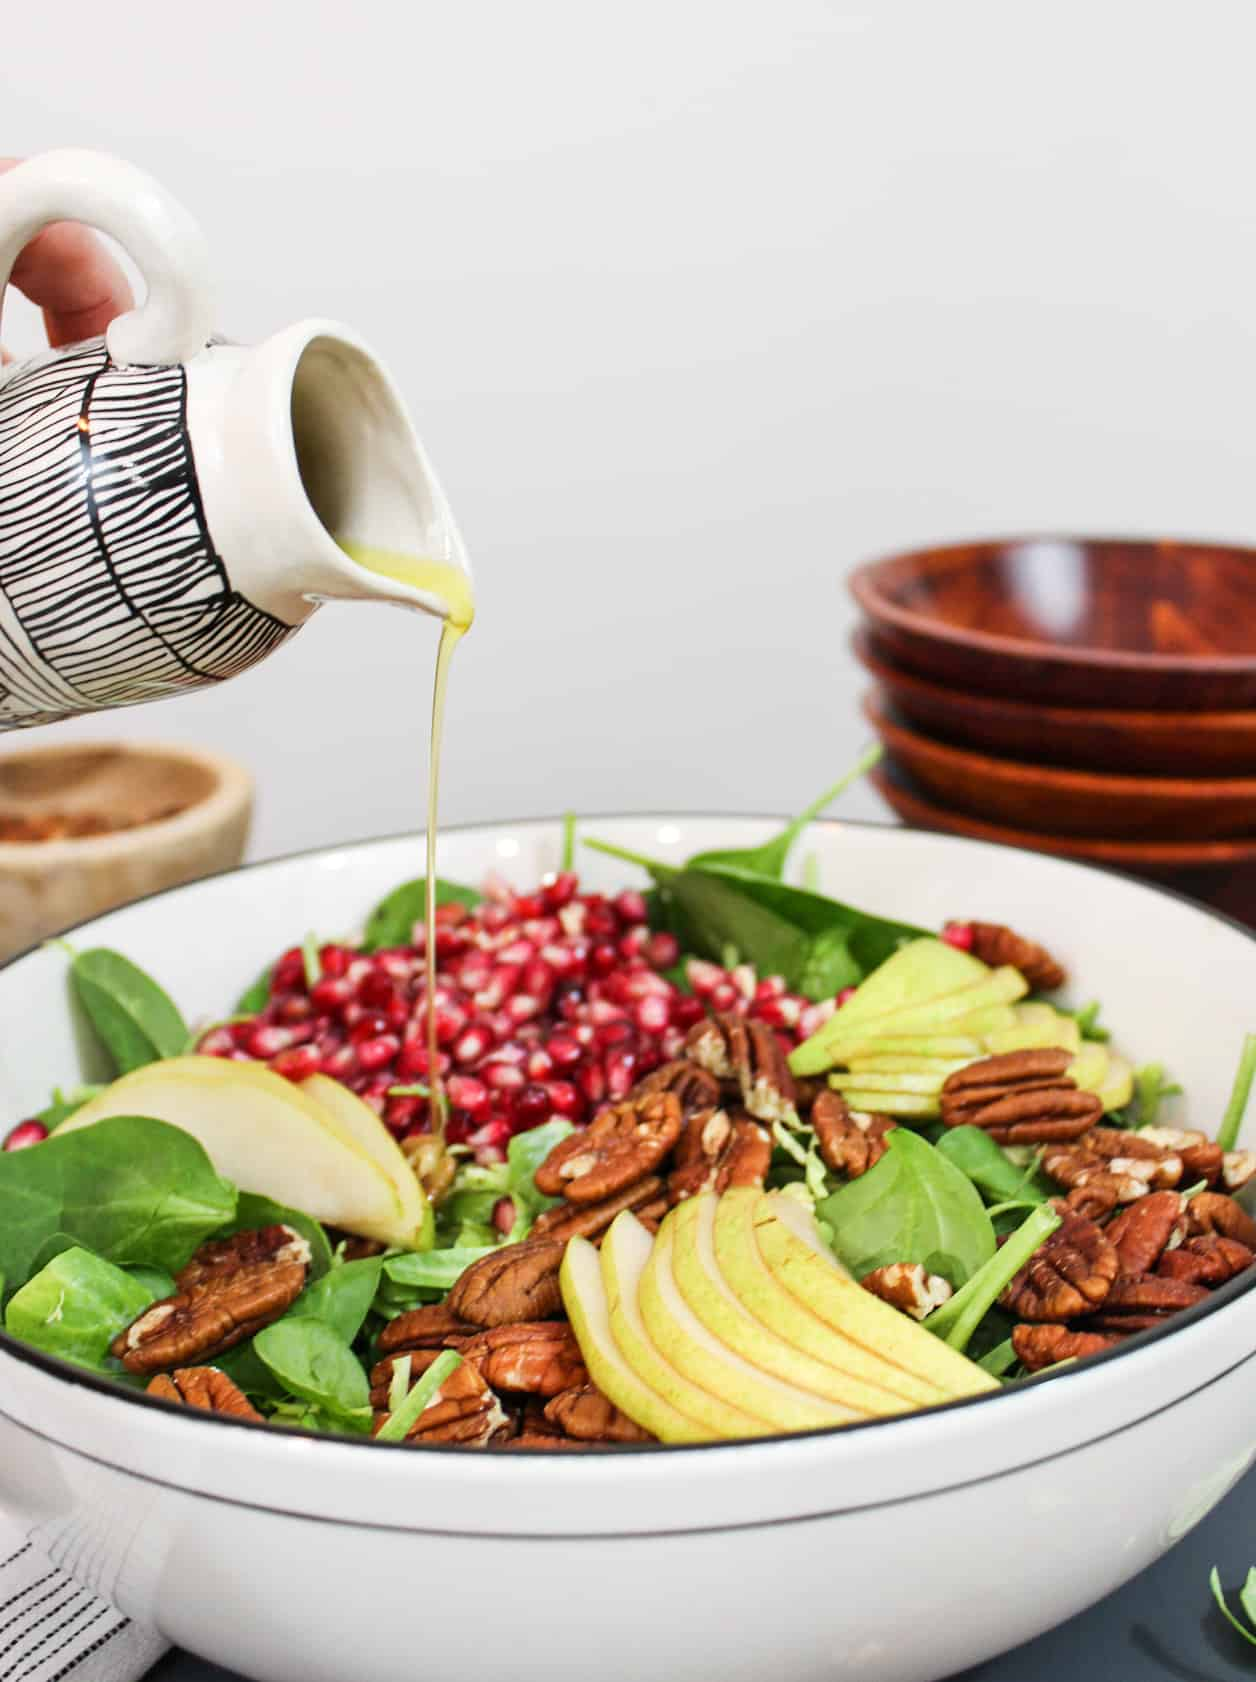 5 benefits of Pomegranate & A Winter Salad with Pomegranate Seeds